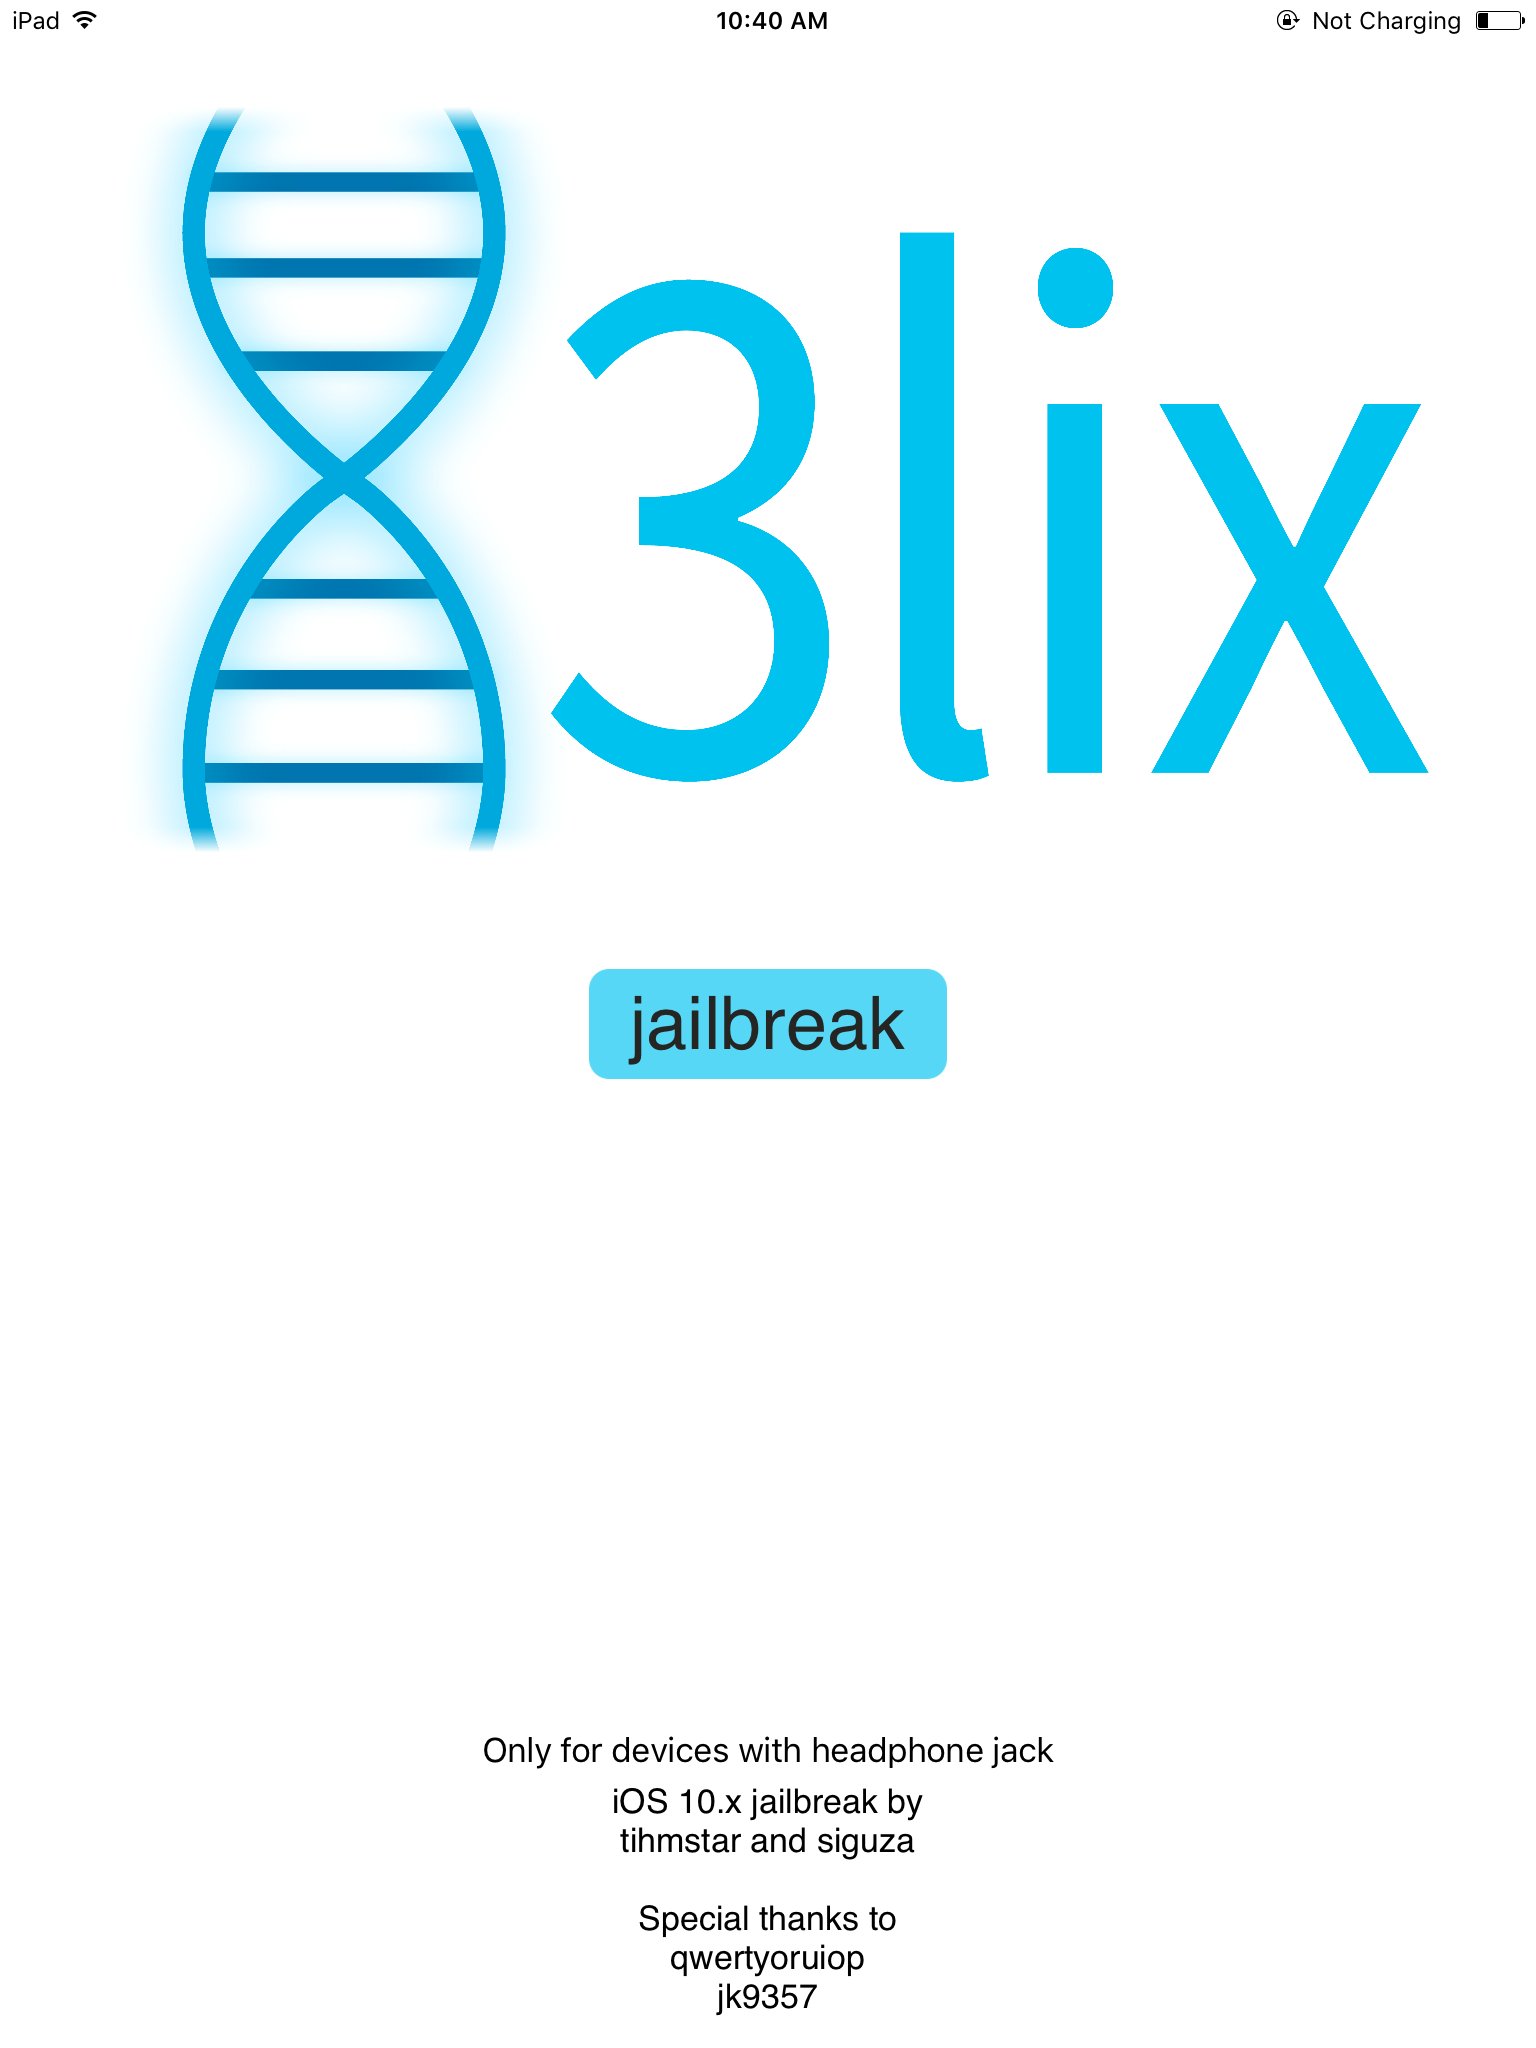 doubleH3lix for iOS 10 - 10.3.3 64-bit Jailbreak with Cydia